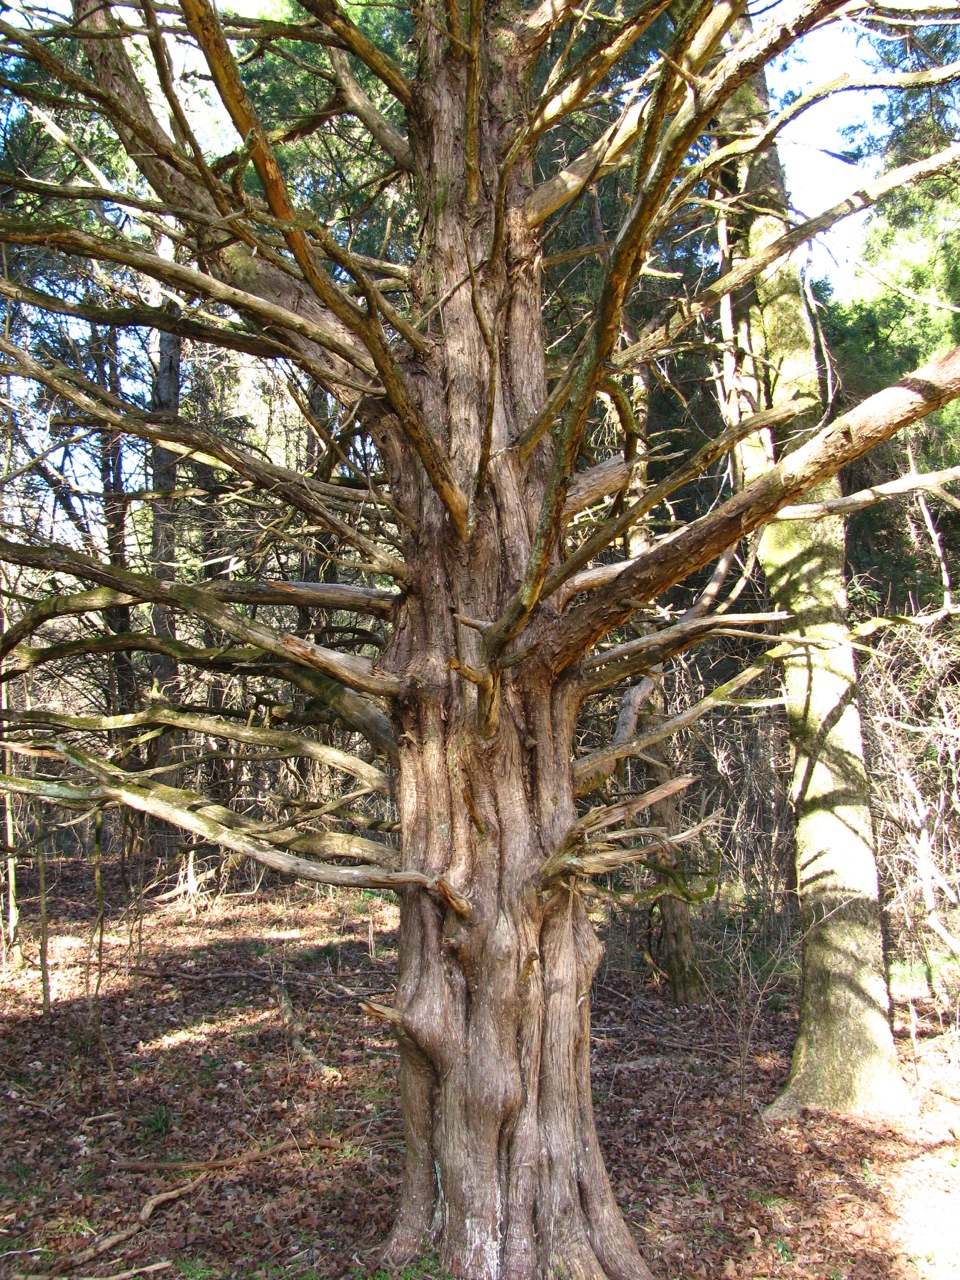 The Scientific Name is Juniperus virginiana. You will likely hear them called Eastern Red Cedar. This picture shows the Mature tree showing trunk with fluted base and bark that exfoliates in thin strips of Juniperus virginiana